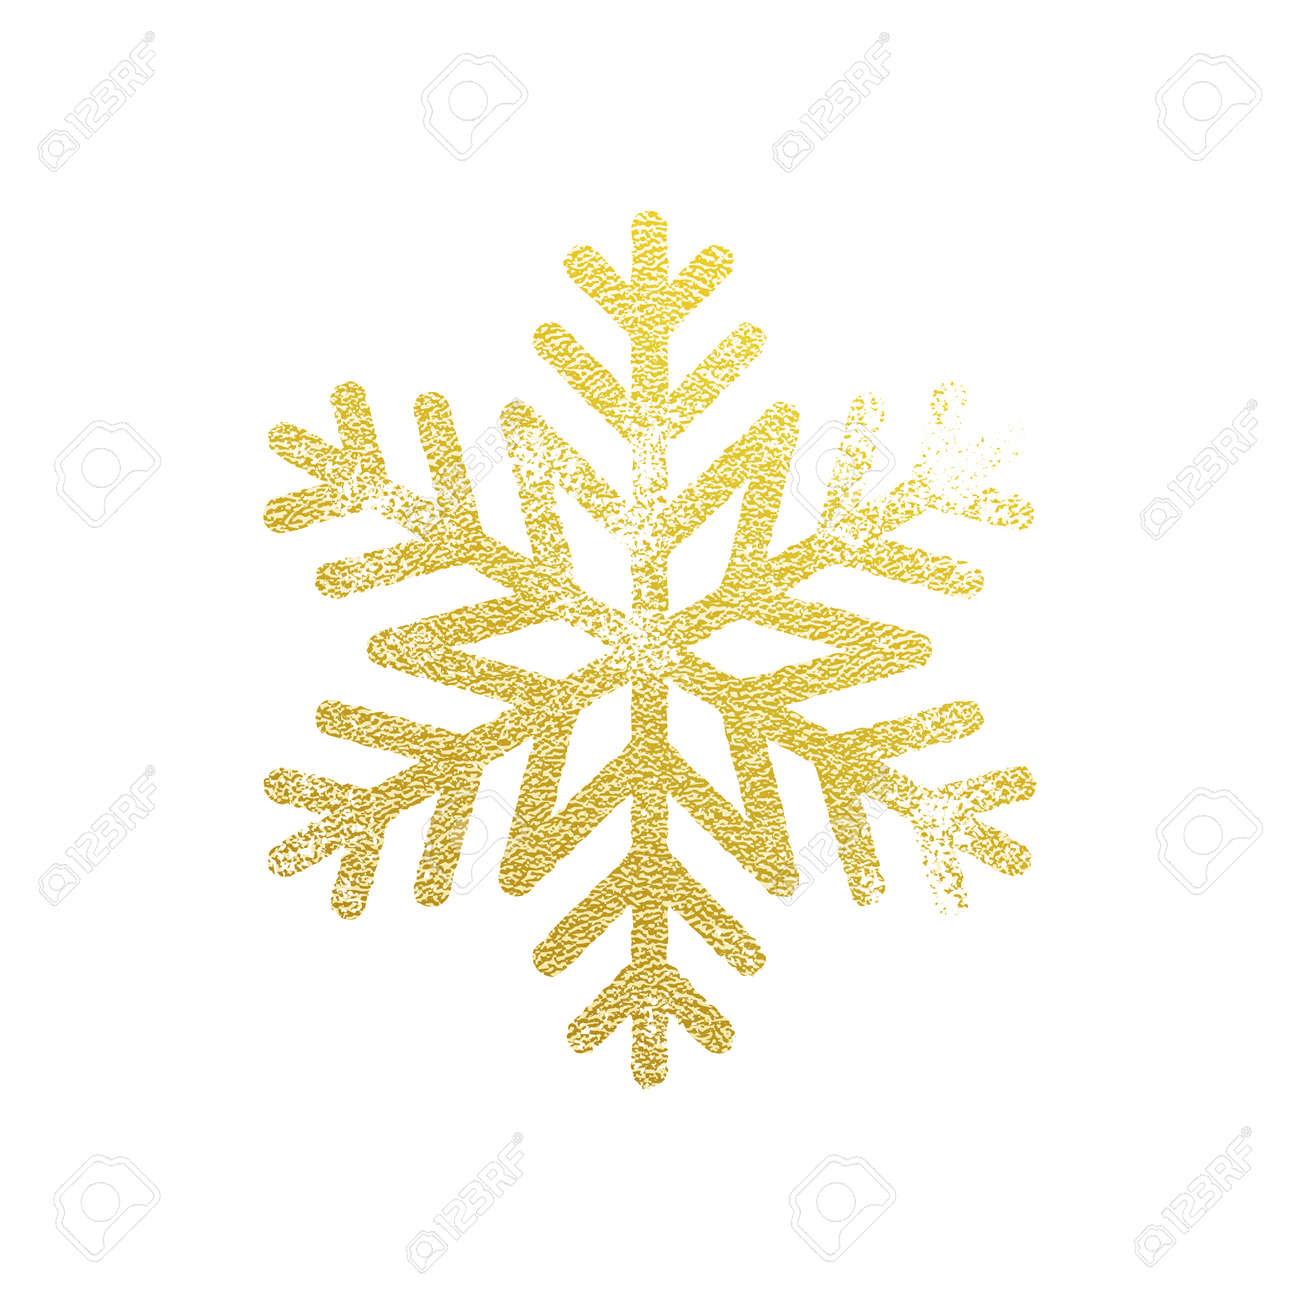 Snowflake with gold glitter texture  Christmas, New Year golden